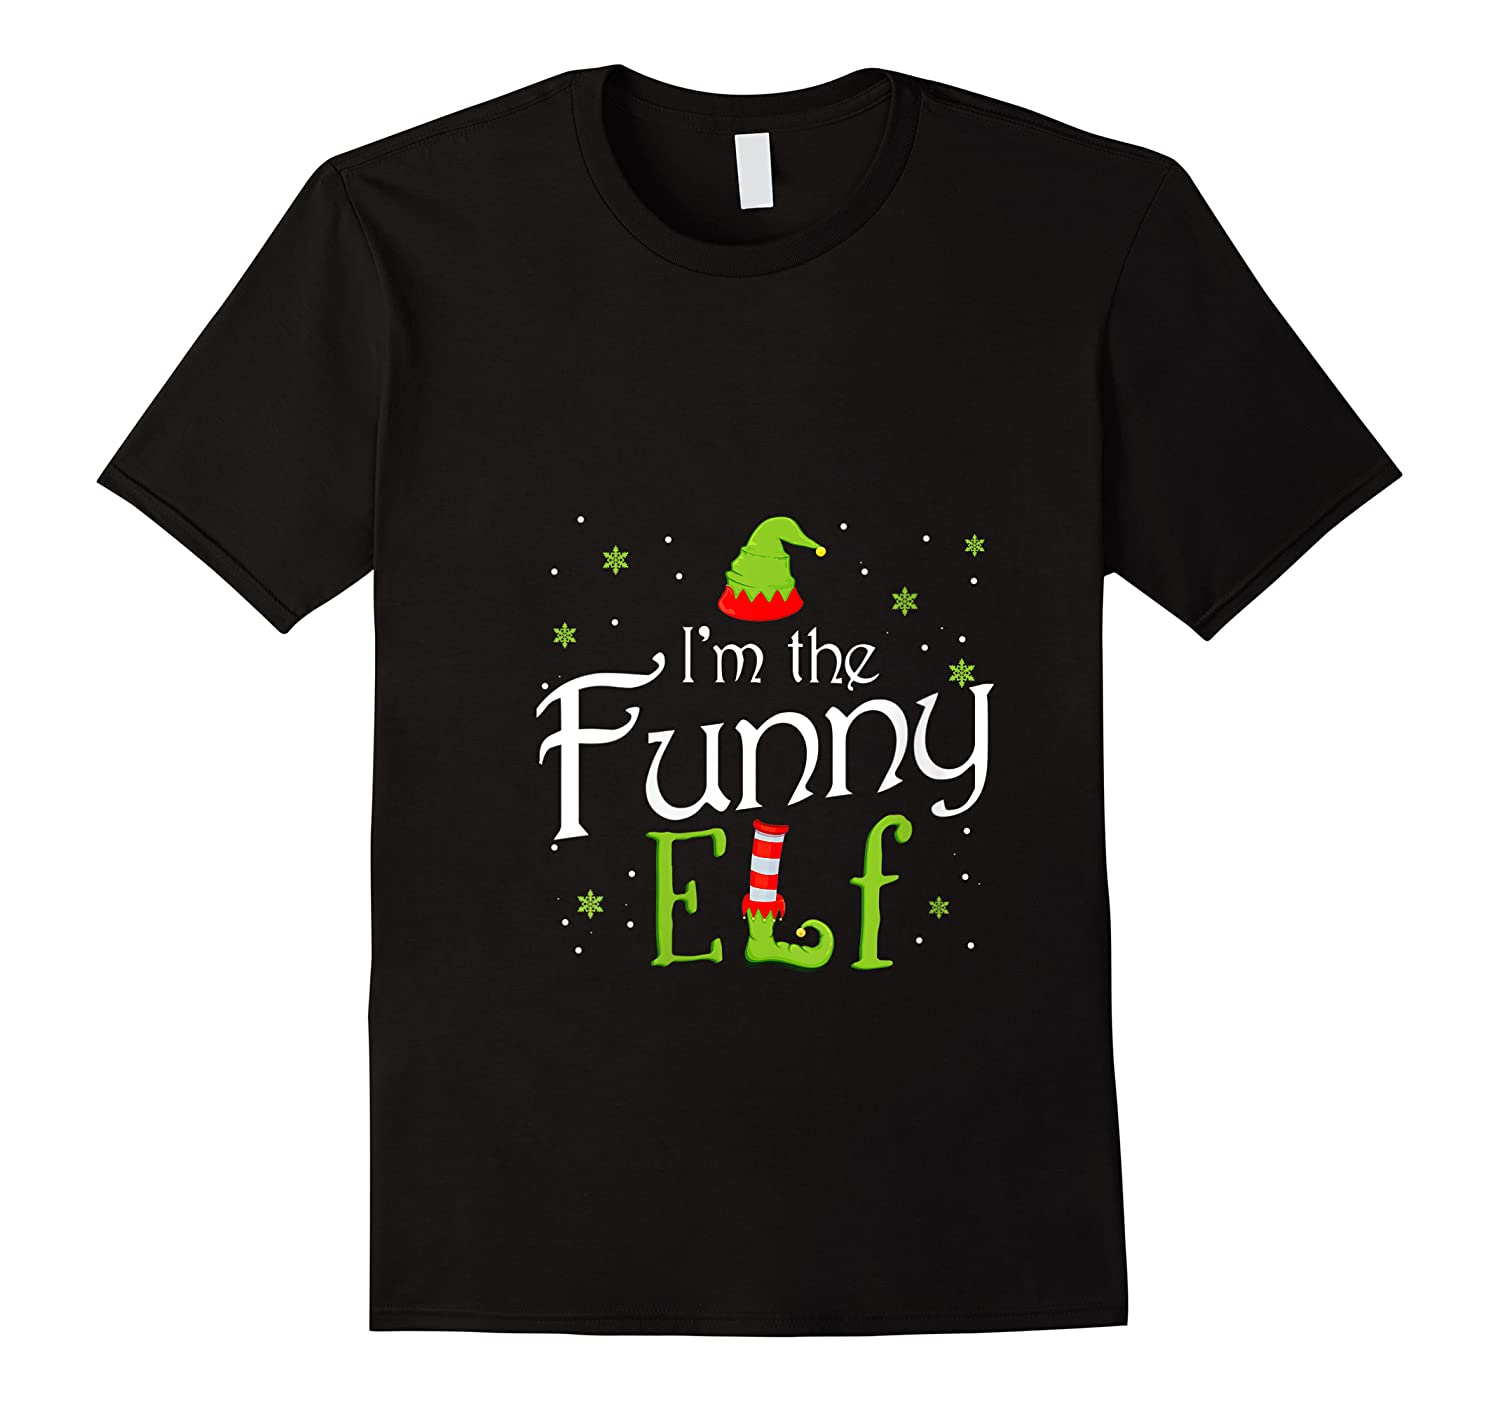 I'm The Funny Elf Funny Group Matching Family Christmas Gift Shirts